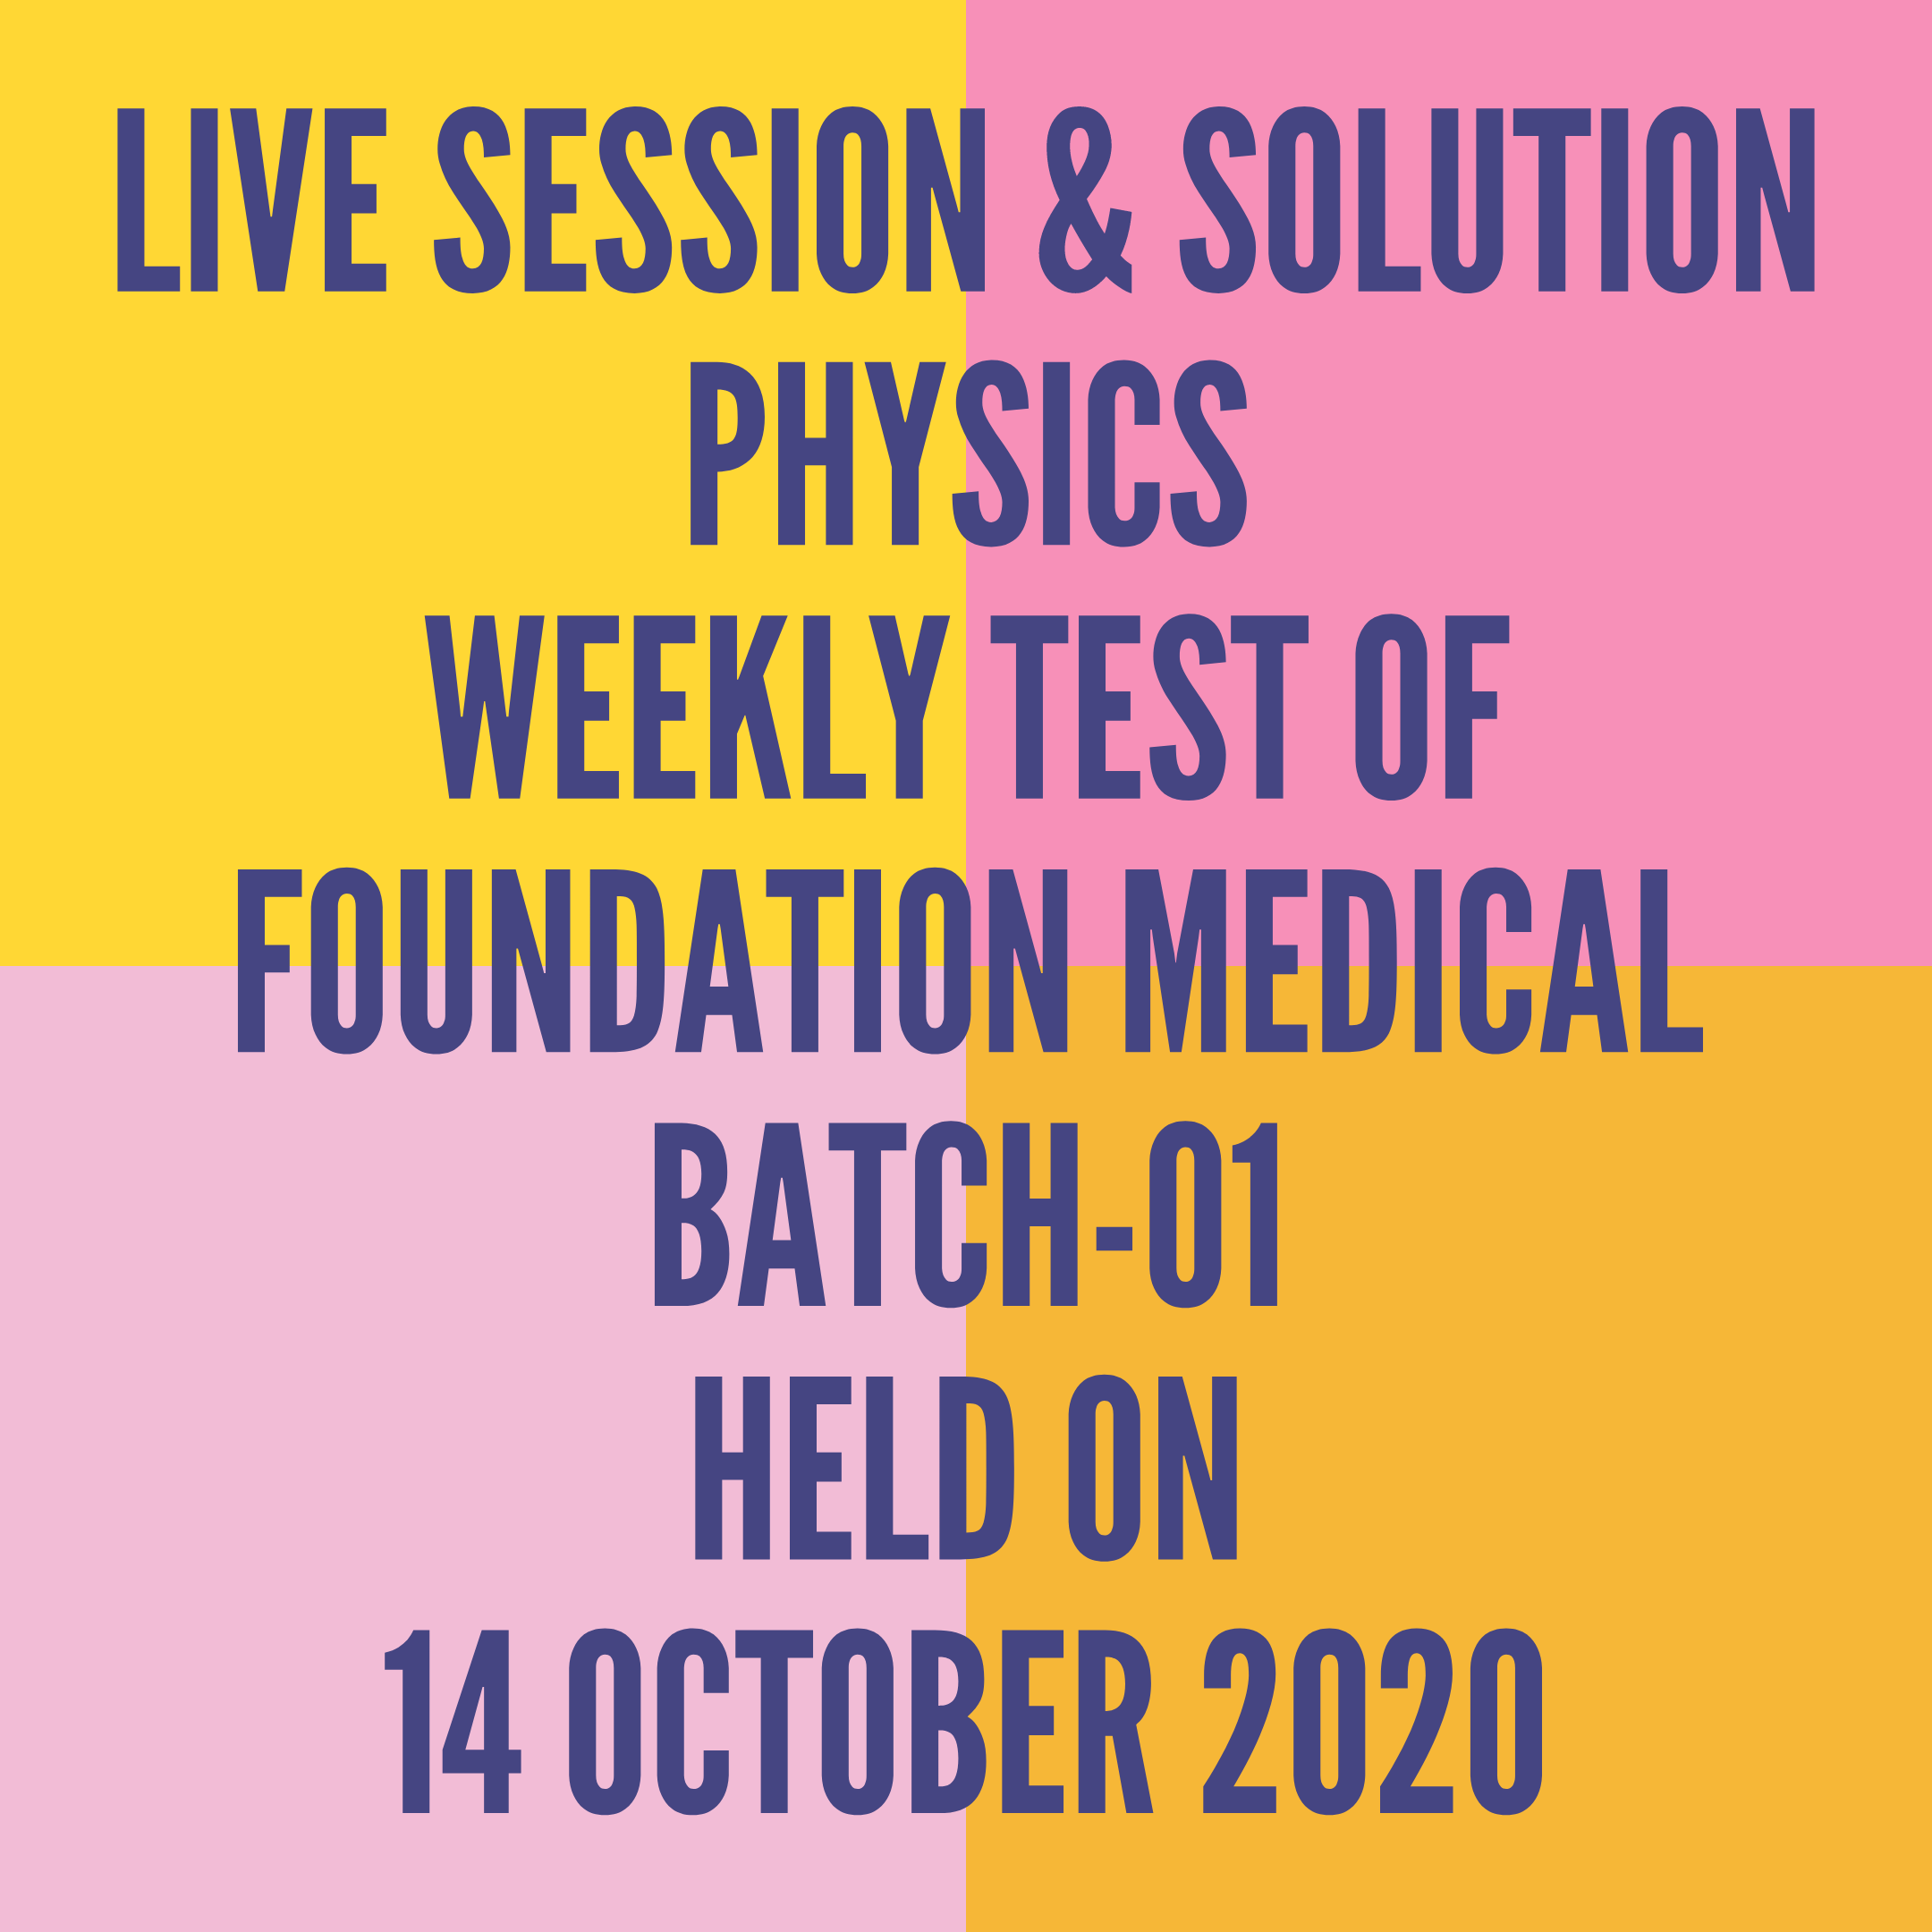 LIVE SESSION & SOLUTION PHYSICS WEEKLY TEST OF FOUNDATION MEDICAL BATCH-01 HELD ON 14 OCTOBER 2020